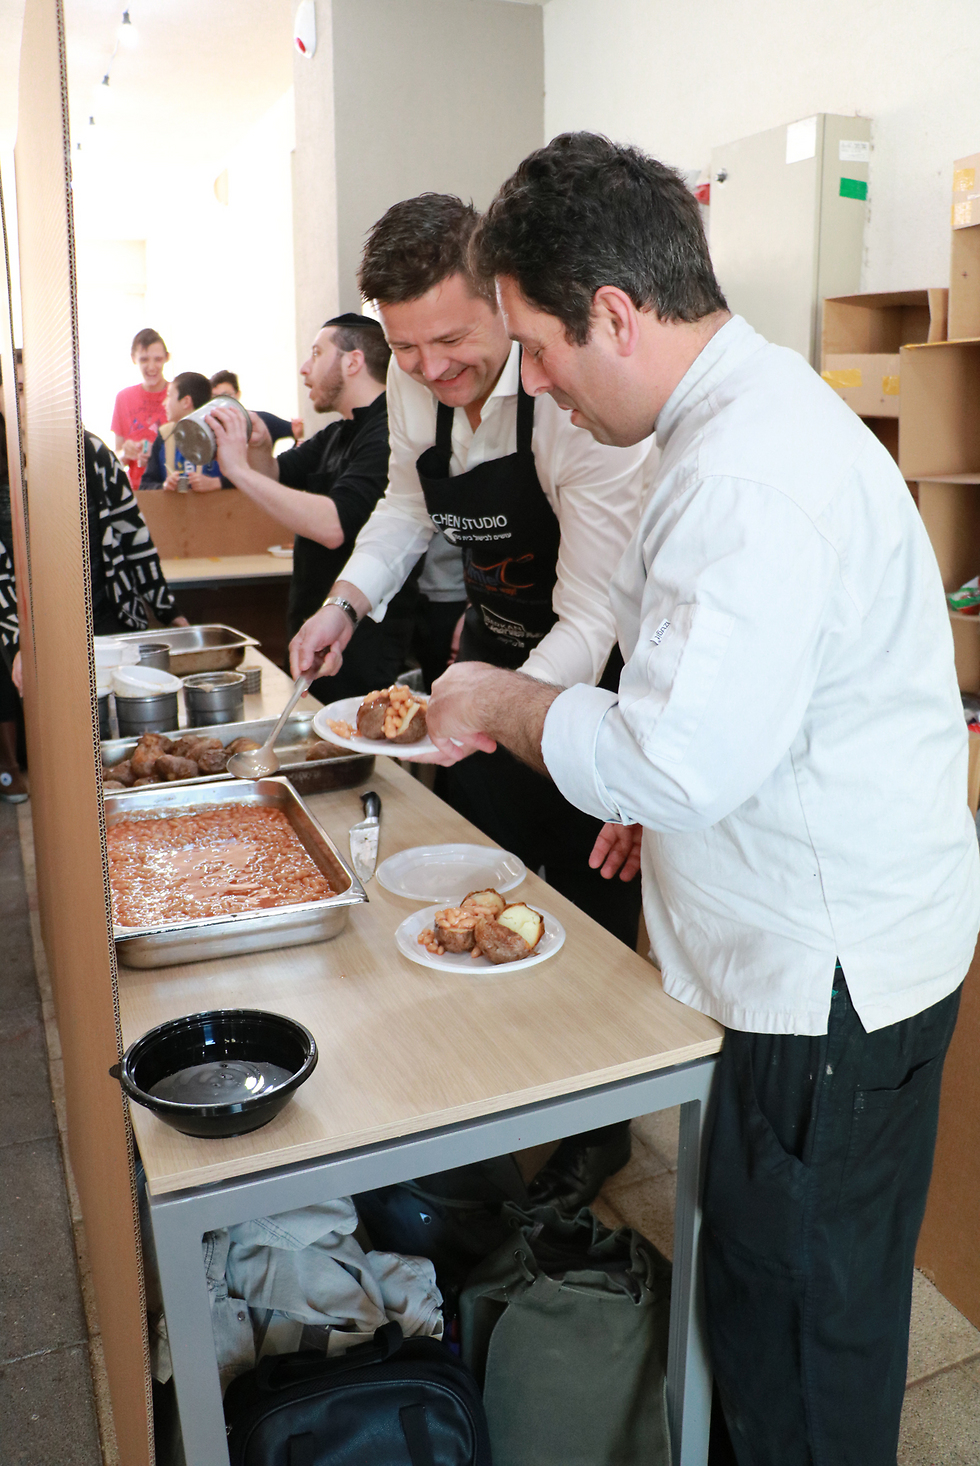 Deputy British Ambassador Tony Kay, left, helps Chef Itai Farkas in the kitchen (Photo: Amnon Hass)